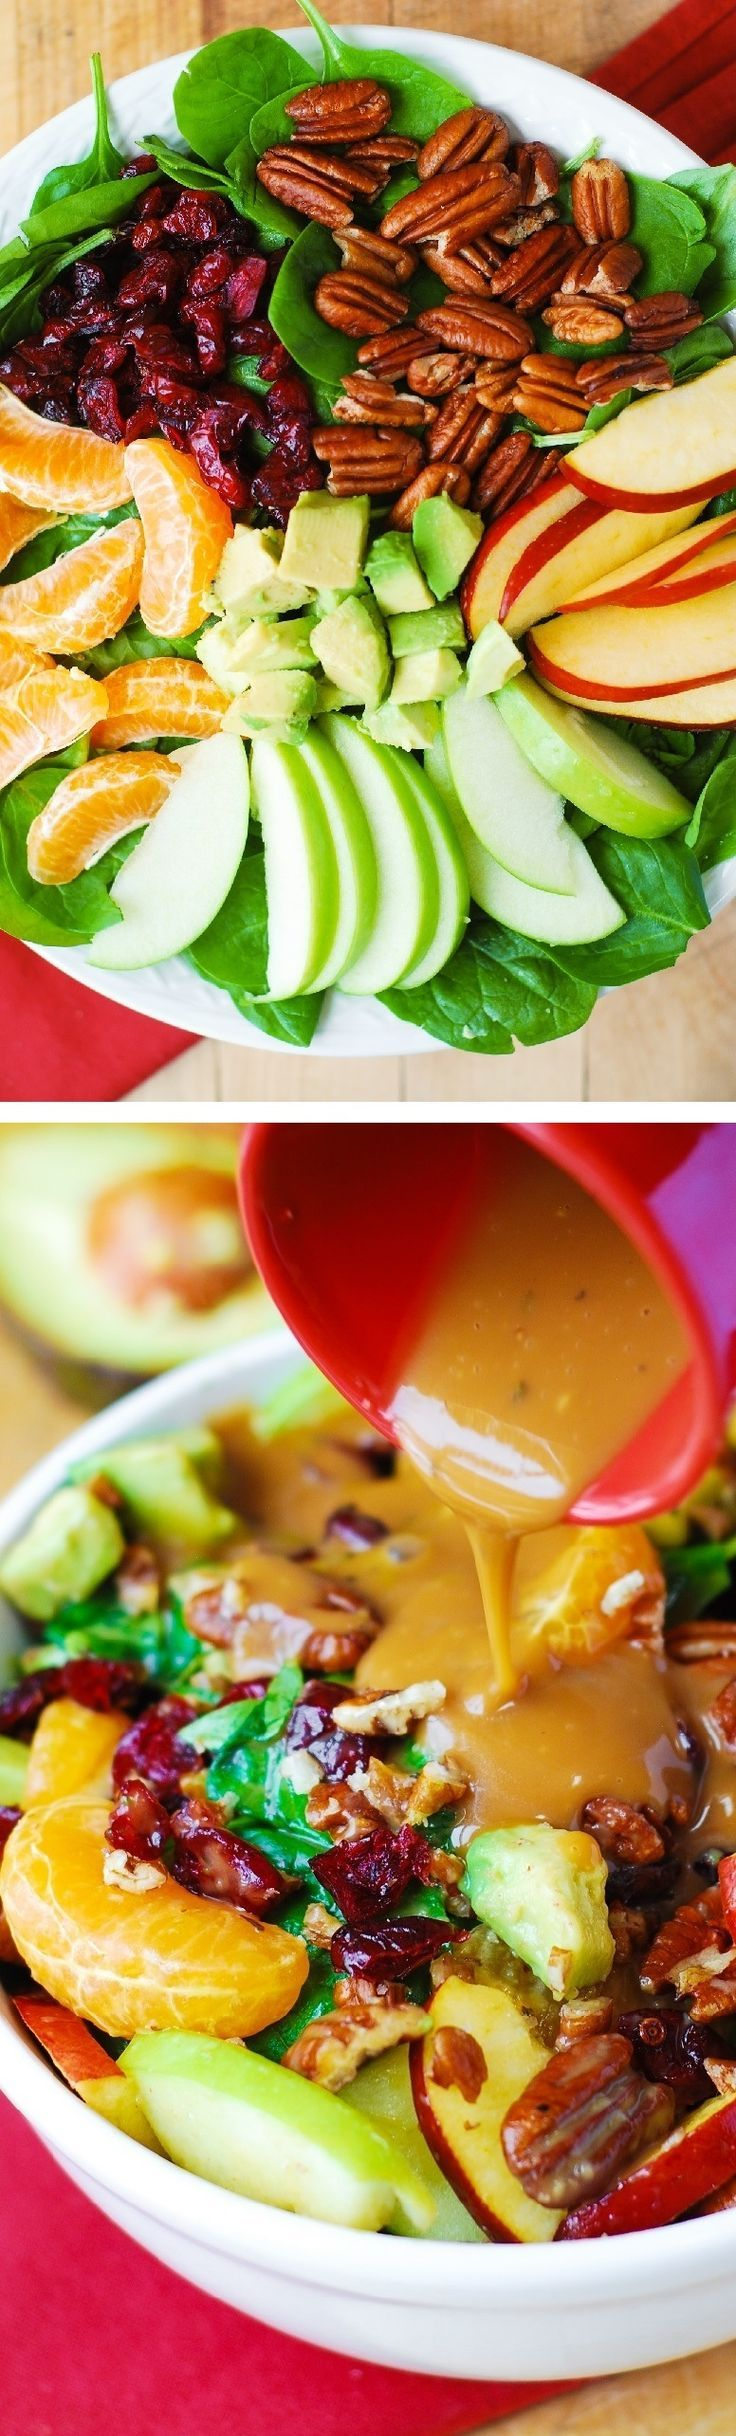 Apple Cranberry Spinach Salad.  Ingredients include Pecans, Avocados (and Balsamic Vinaigrette Dressing) - delicious, healthy, vegetarian, gluten free recipe! #Marzetti #BH #sponsored